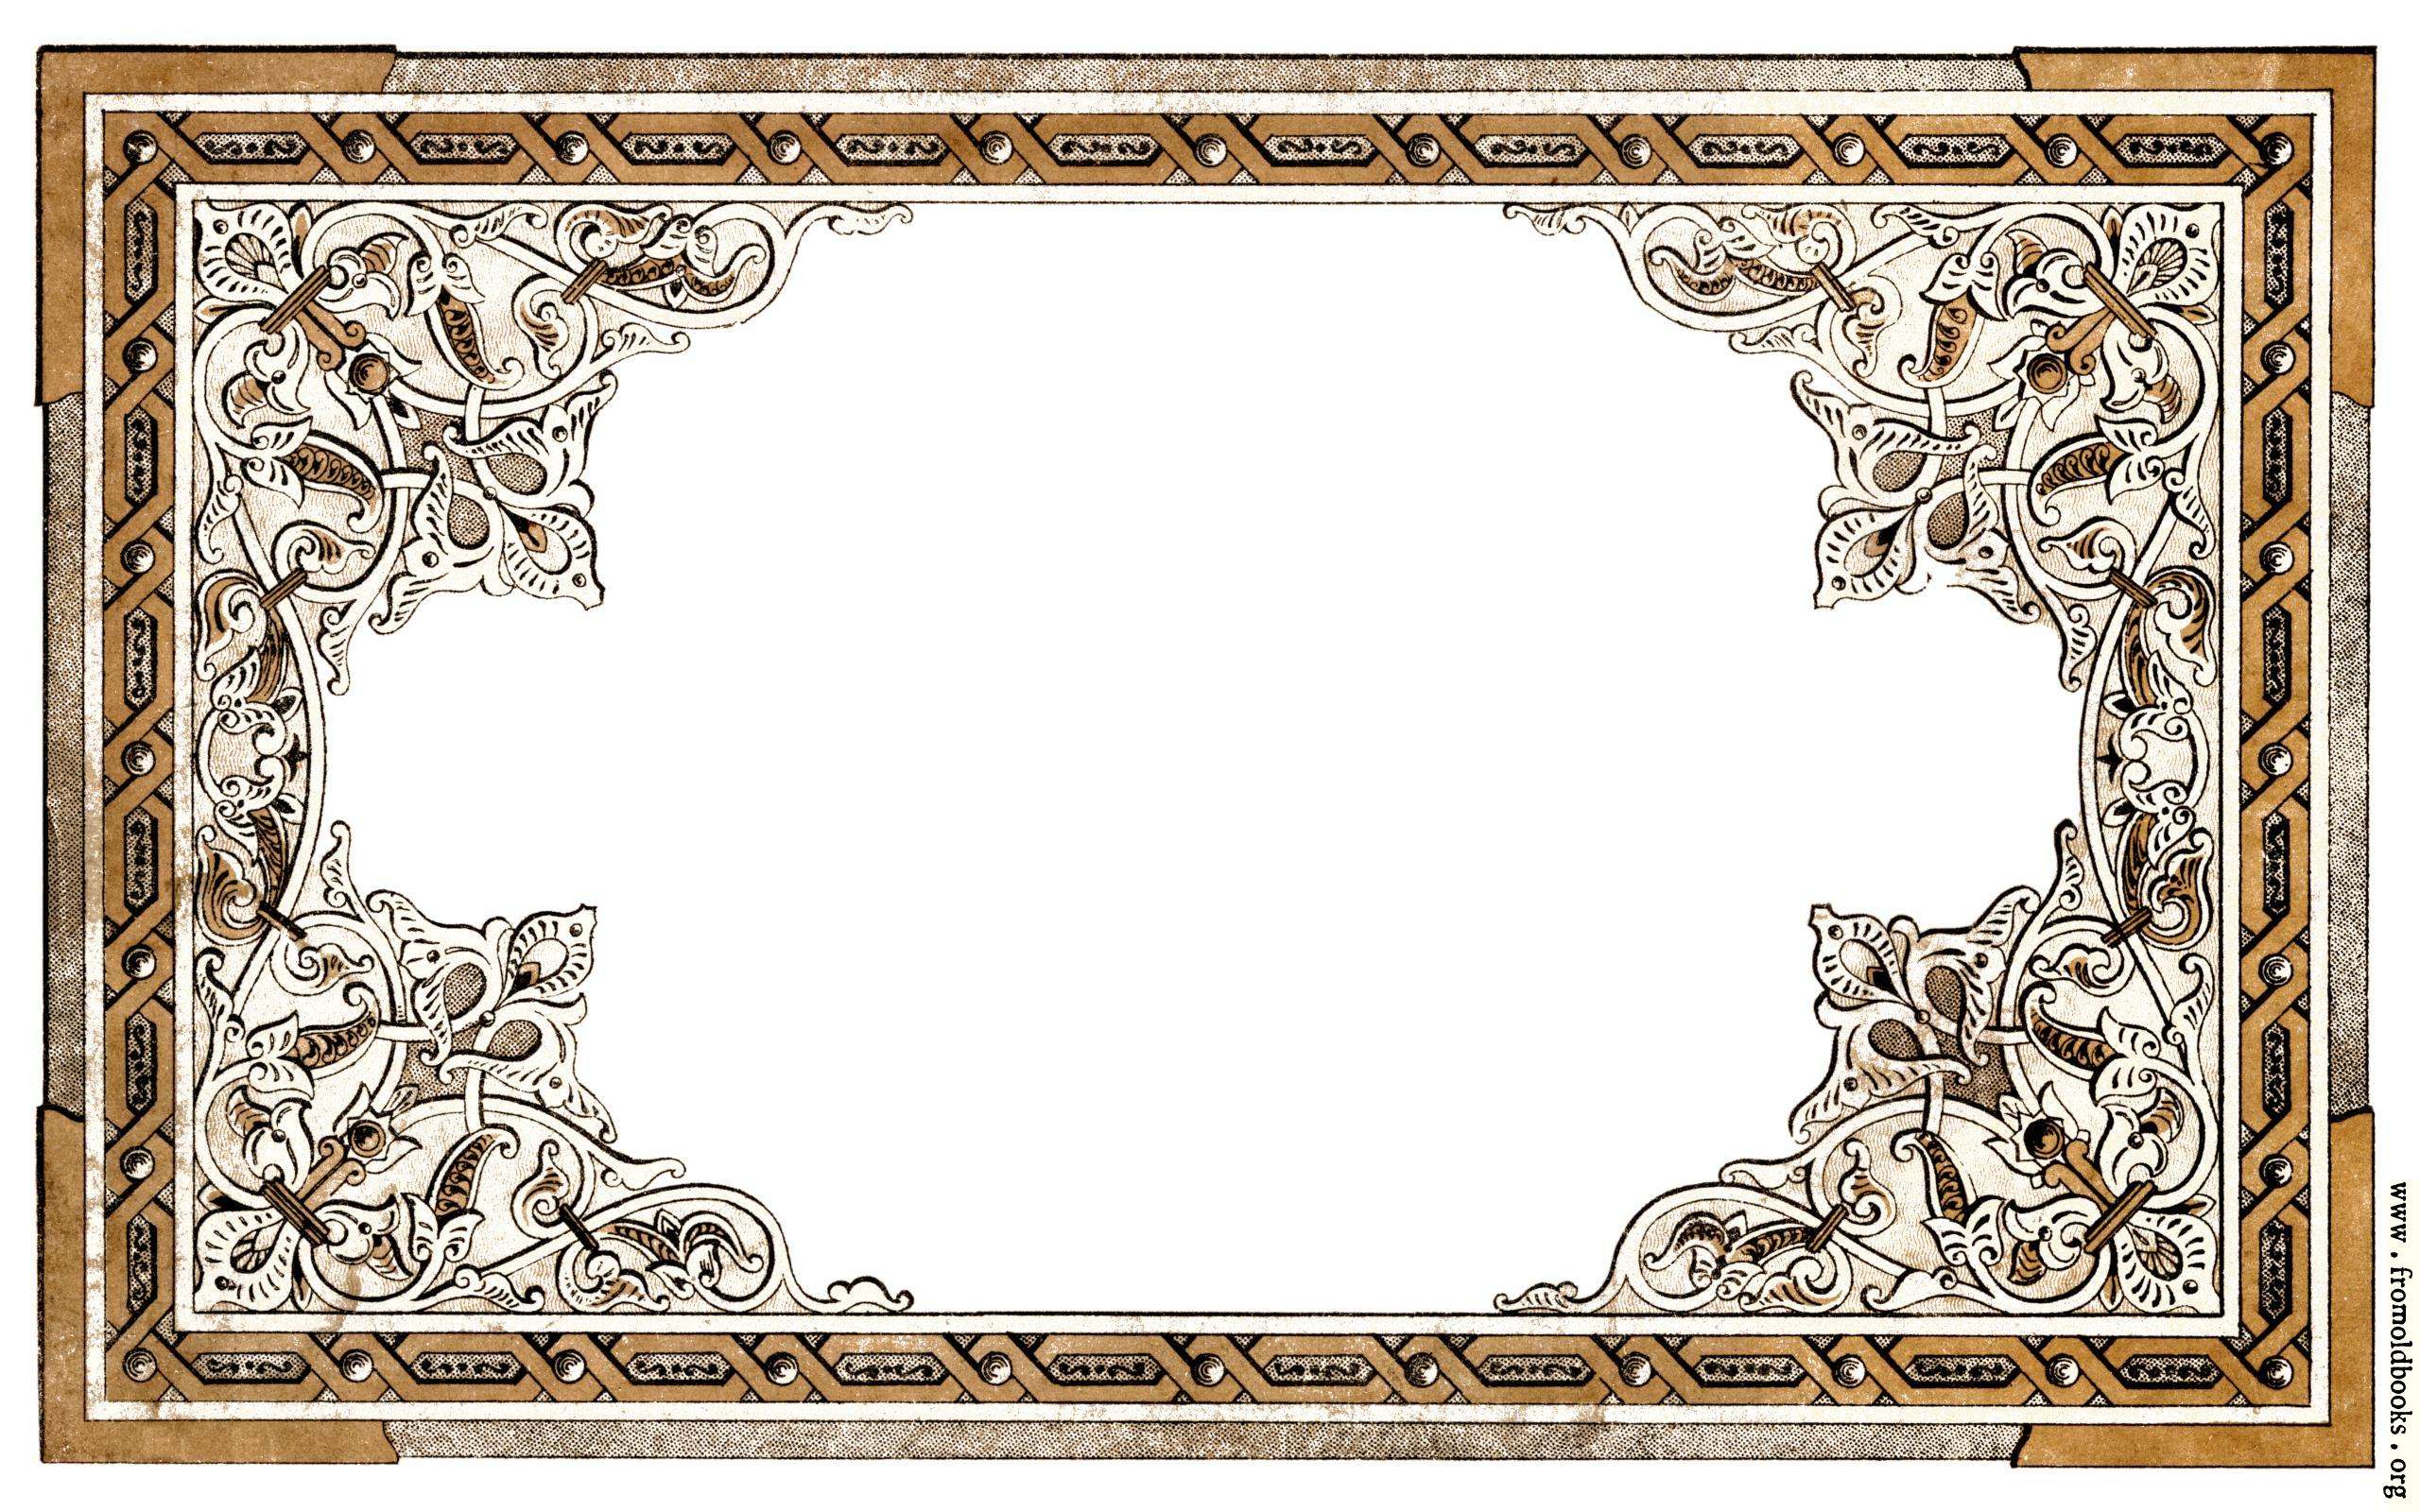 Vintage shabby-chic ornate full-page border